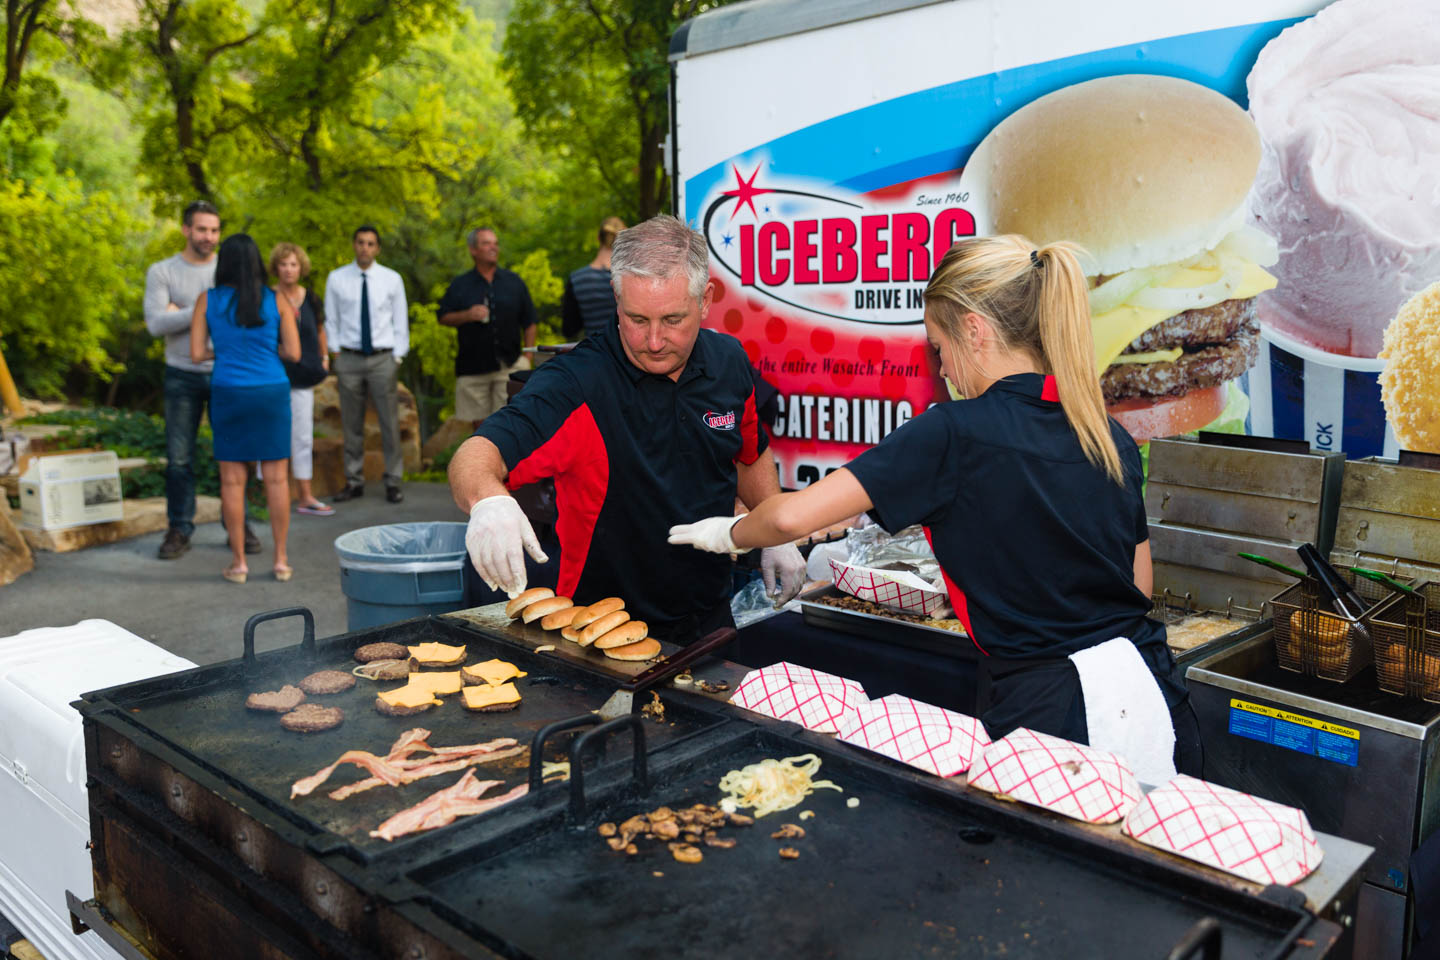 The folks from Iceberg making their classic hamburgers